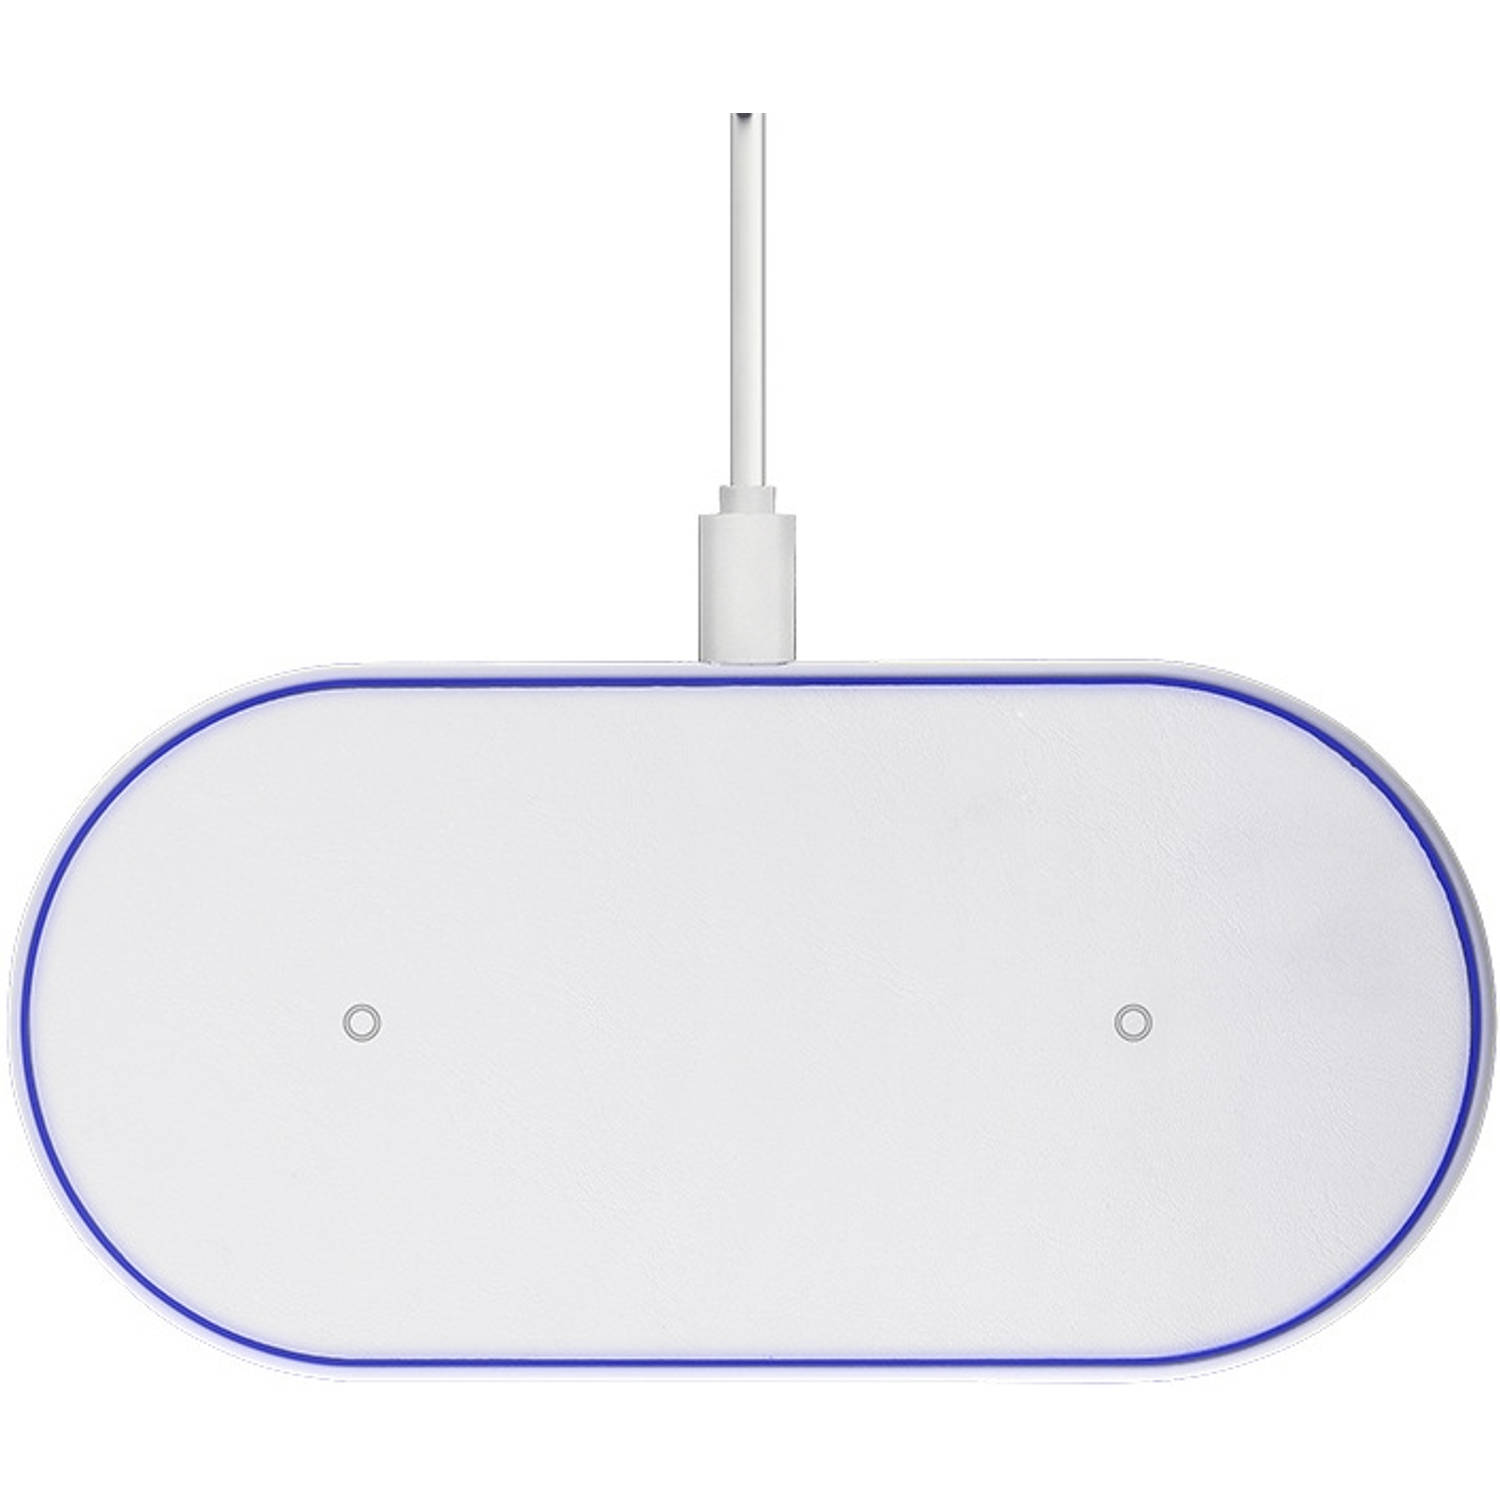 Cyoo Duo Iphone Wireless Fast Charger - 10w - Wit